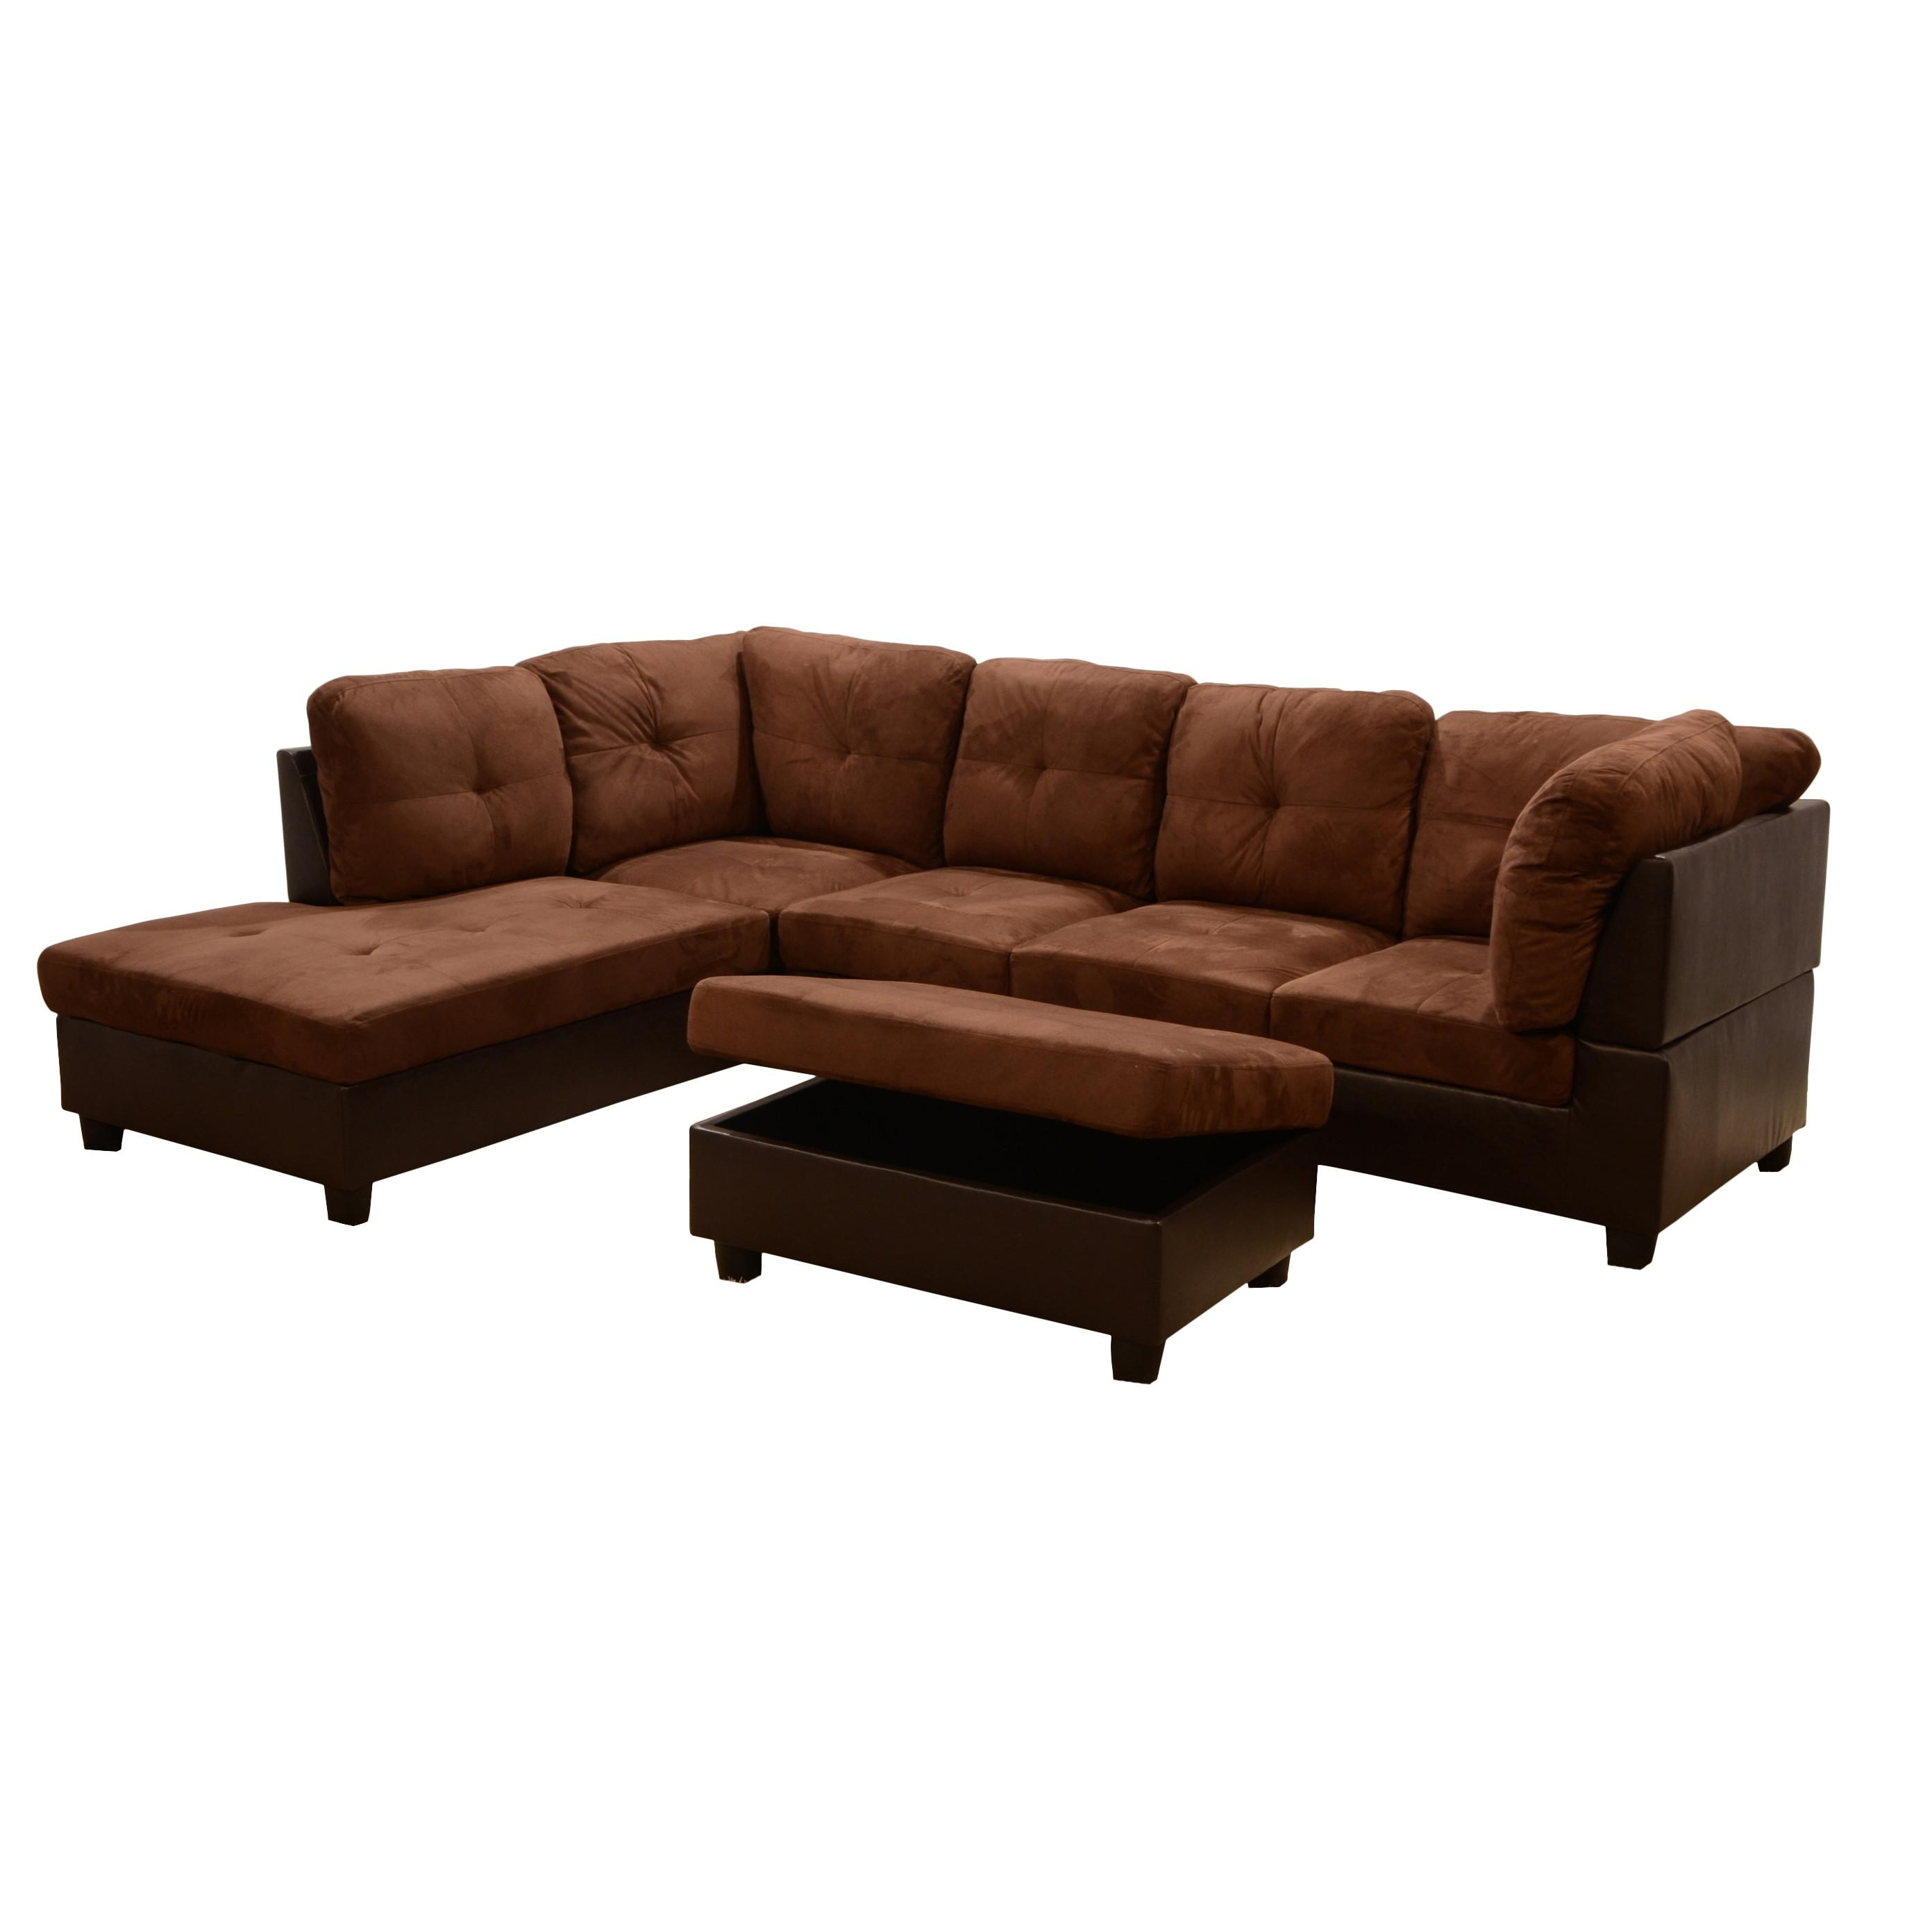 Furniture: Della Left Sectional Sofa With Storage Ottoman In Brown Throughout Sectional Sofa With Storage (Image 7 of 20)